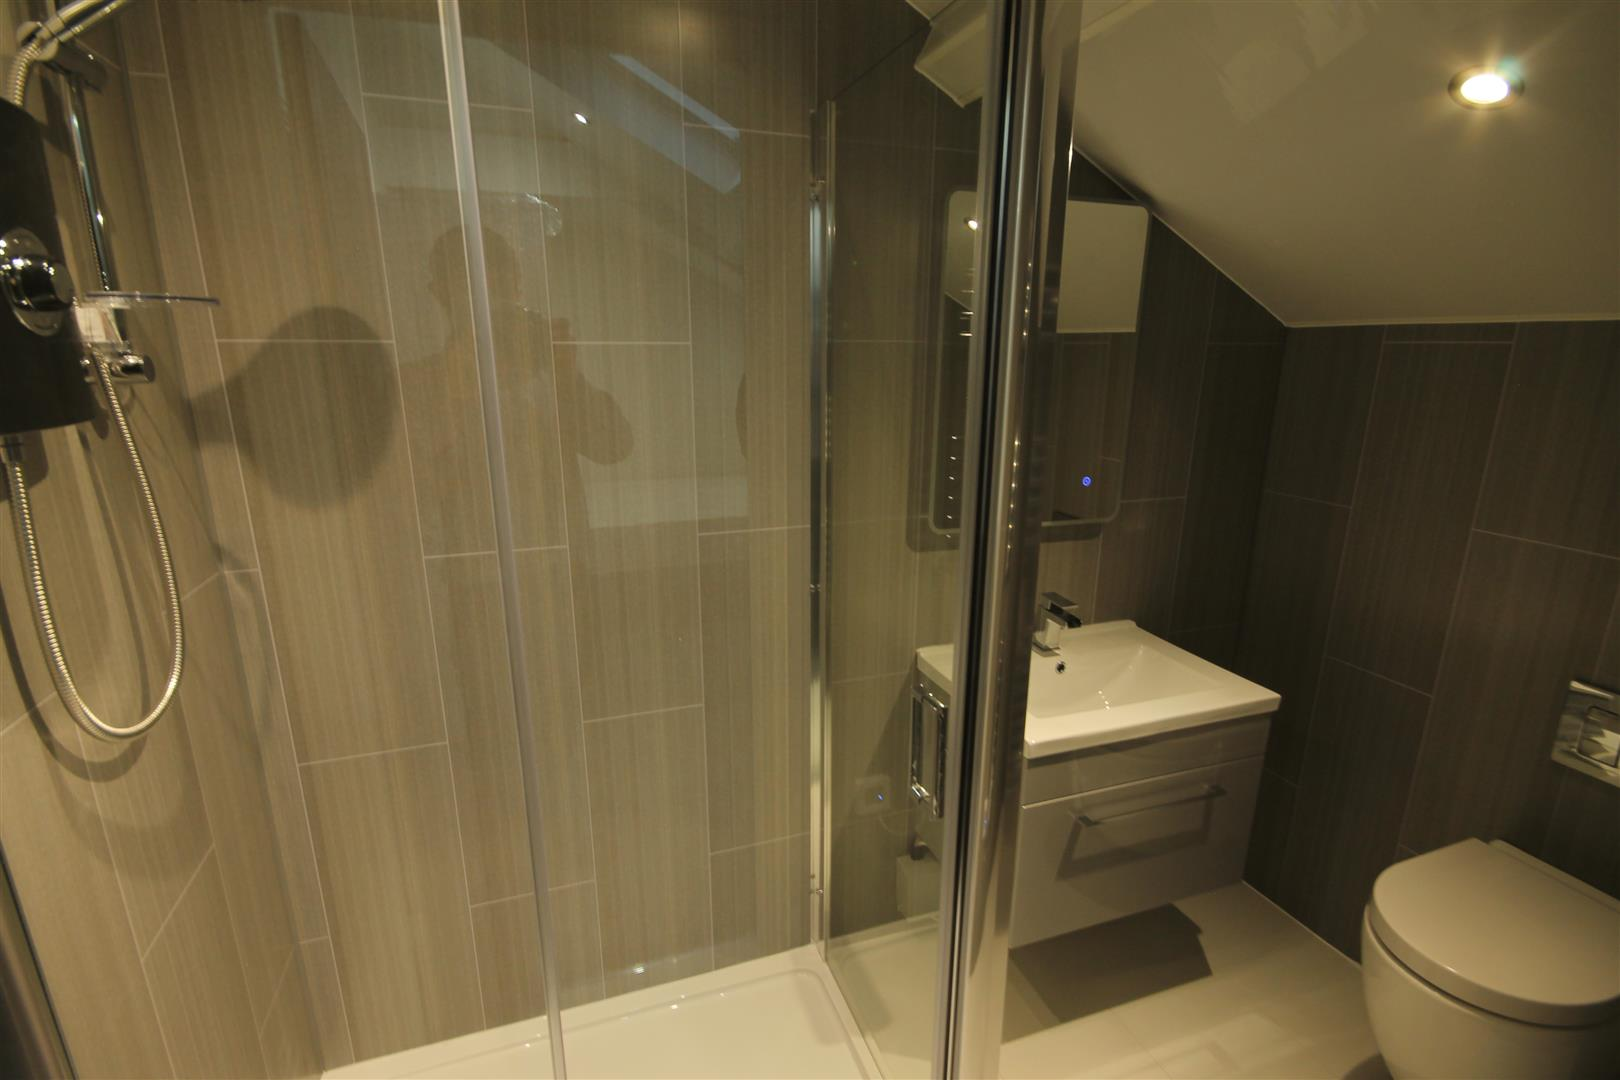 15-21 Nun Street Newcastle Upon Tyne, 2 Bedrooms  Apartment - conversion ,To Let